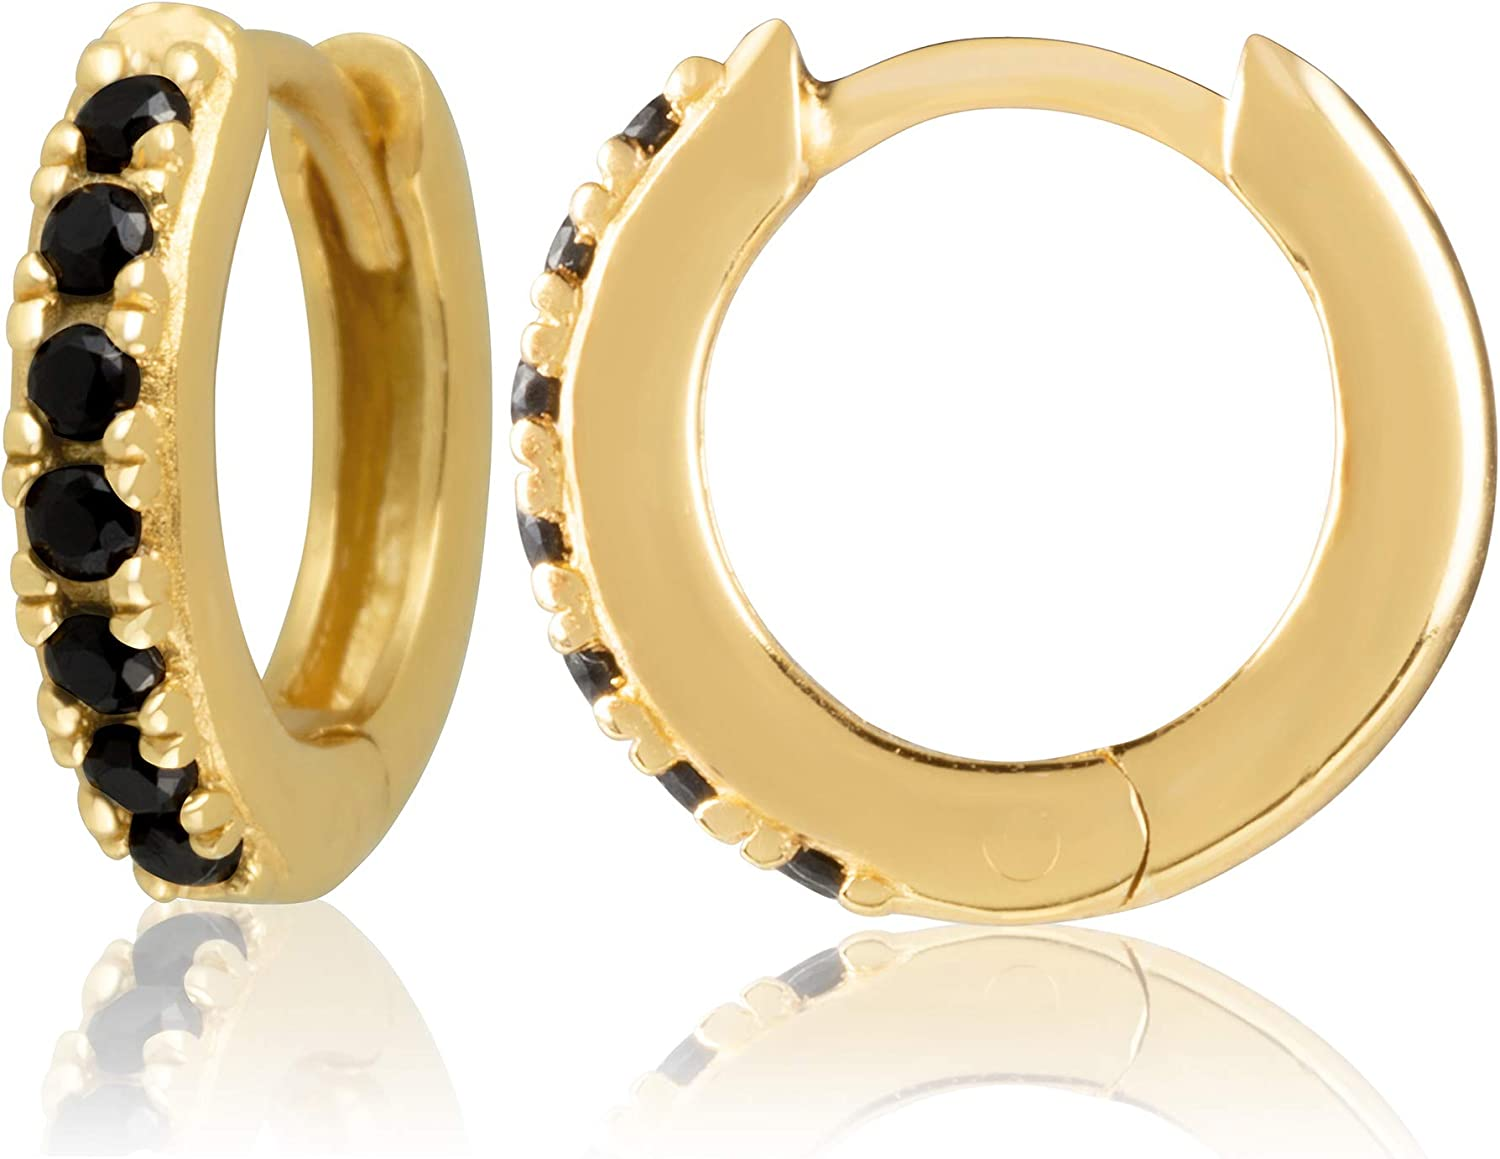 18K Yellow Gold Plated Sterling Silver Huggie Earrings with Stones for Women – Assortment of Designs and Stone Colors Available